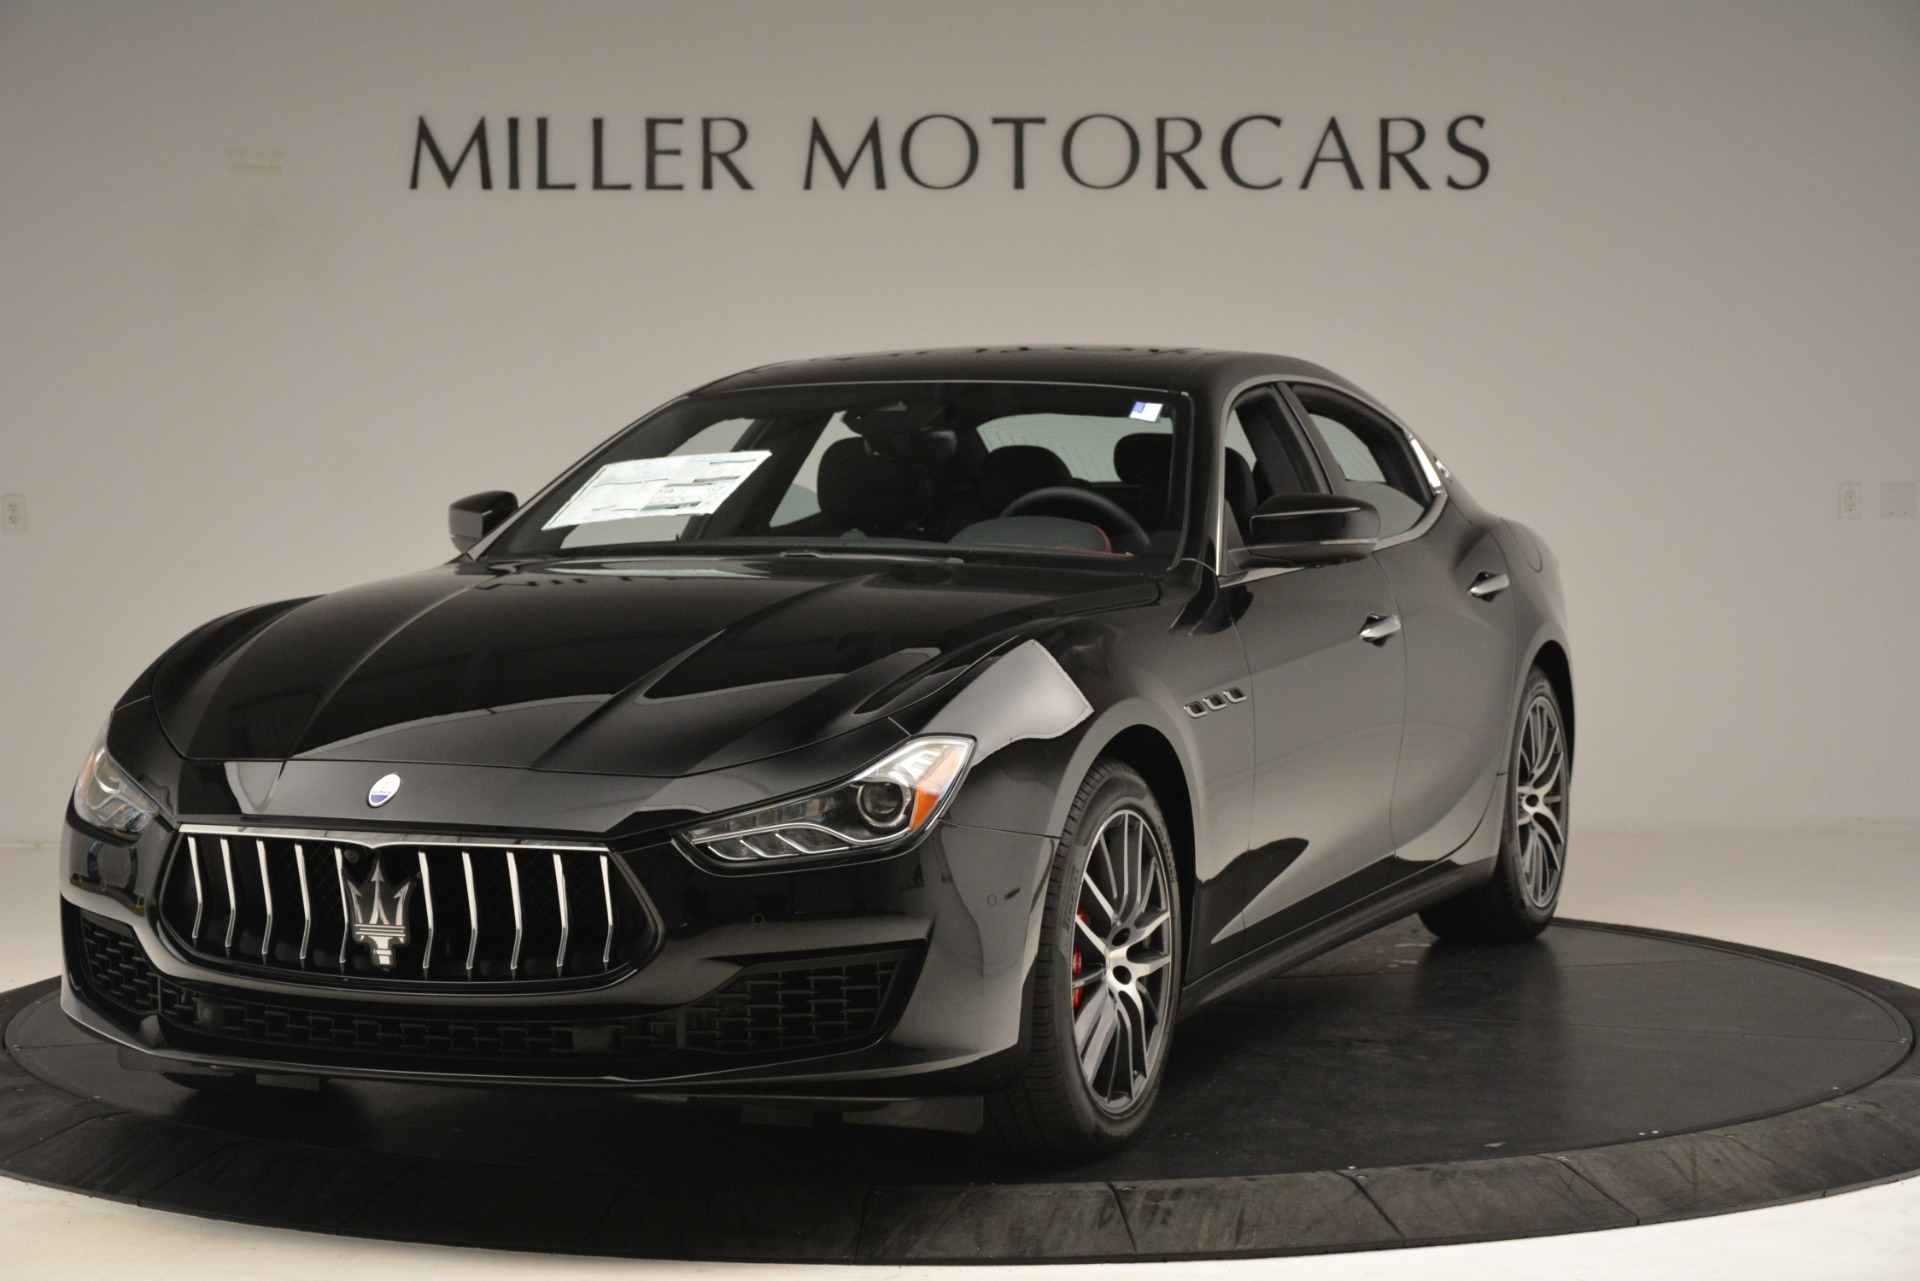 New 2019 Maserati Ghibli S Q4 for sale $59,900 at Pagani of Greenwich in Greenwich CT 06830 1